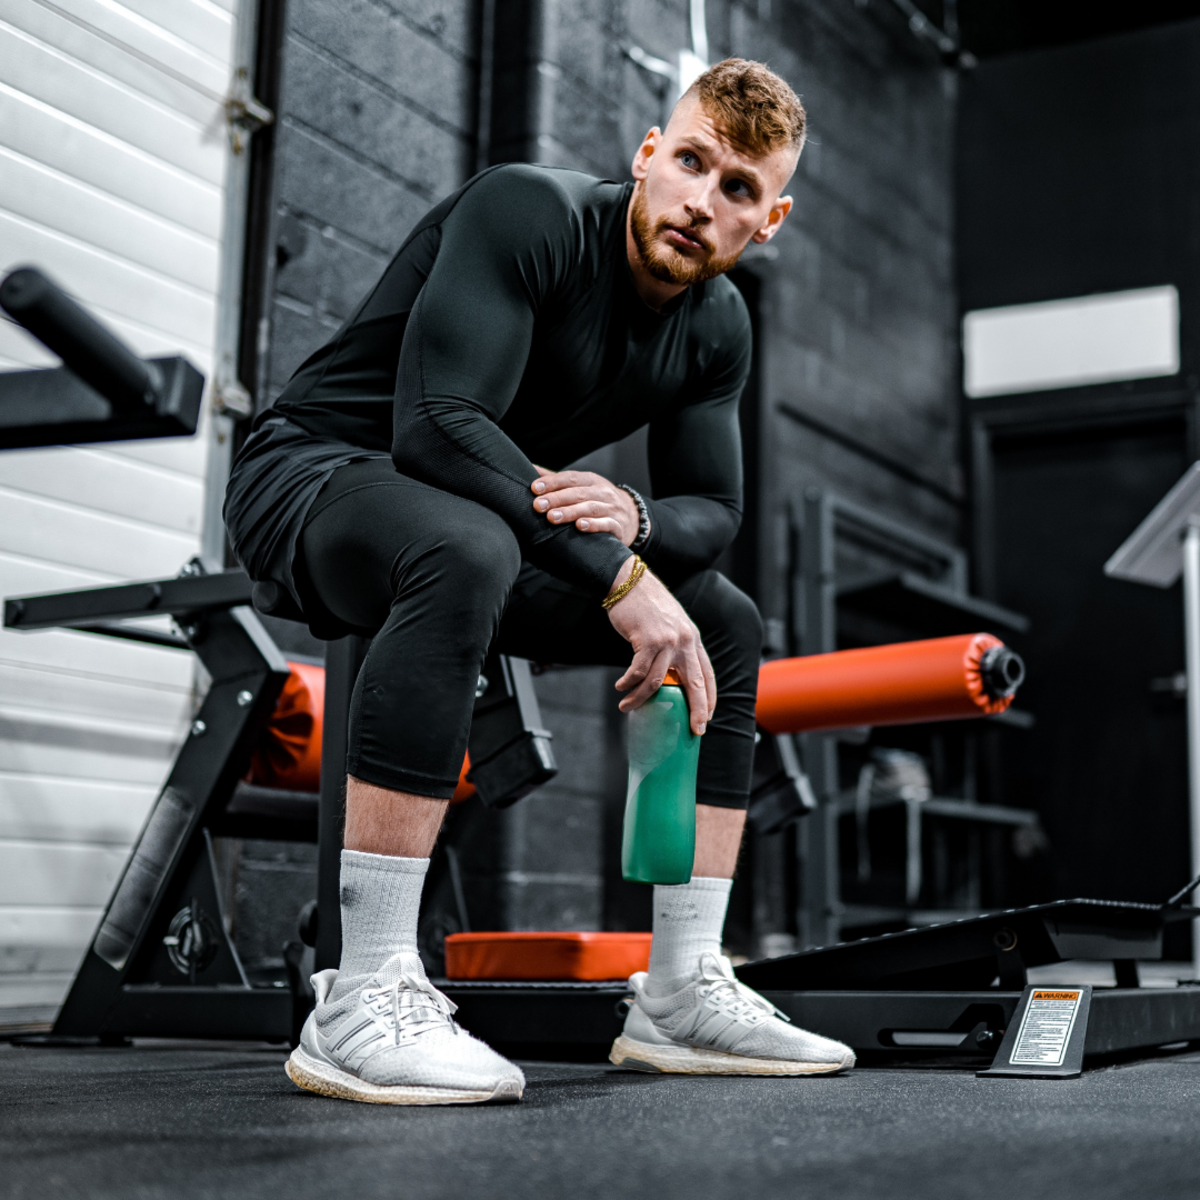 Breaking the ice is the hard part—once you've made a connection, you'll need to follow up and make plans to meet up with her outside of the gym.